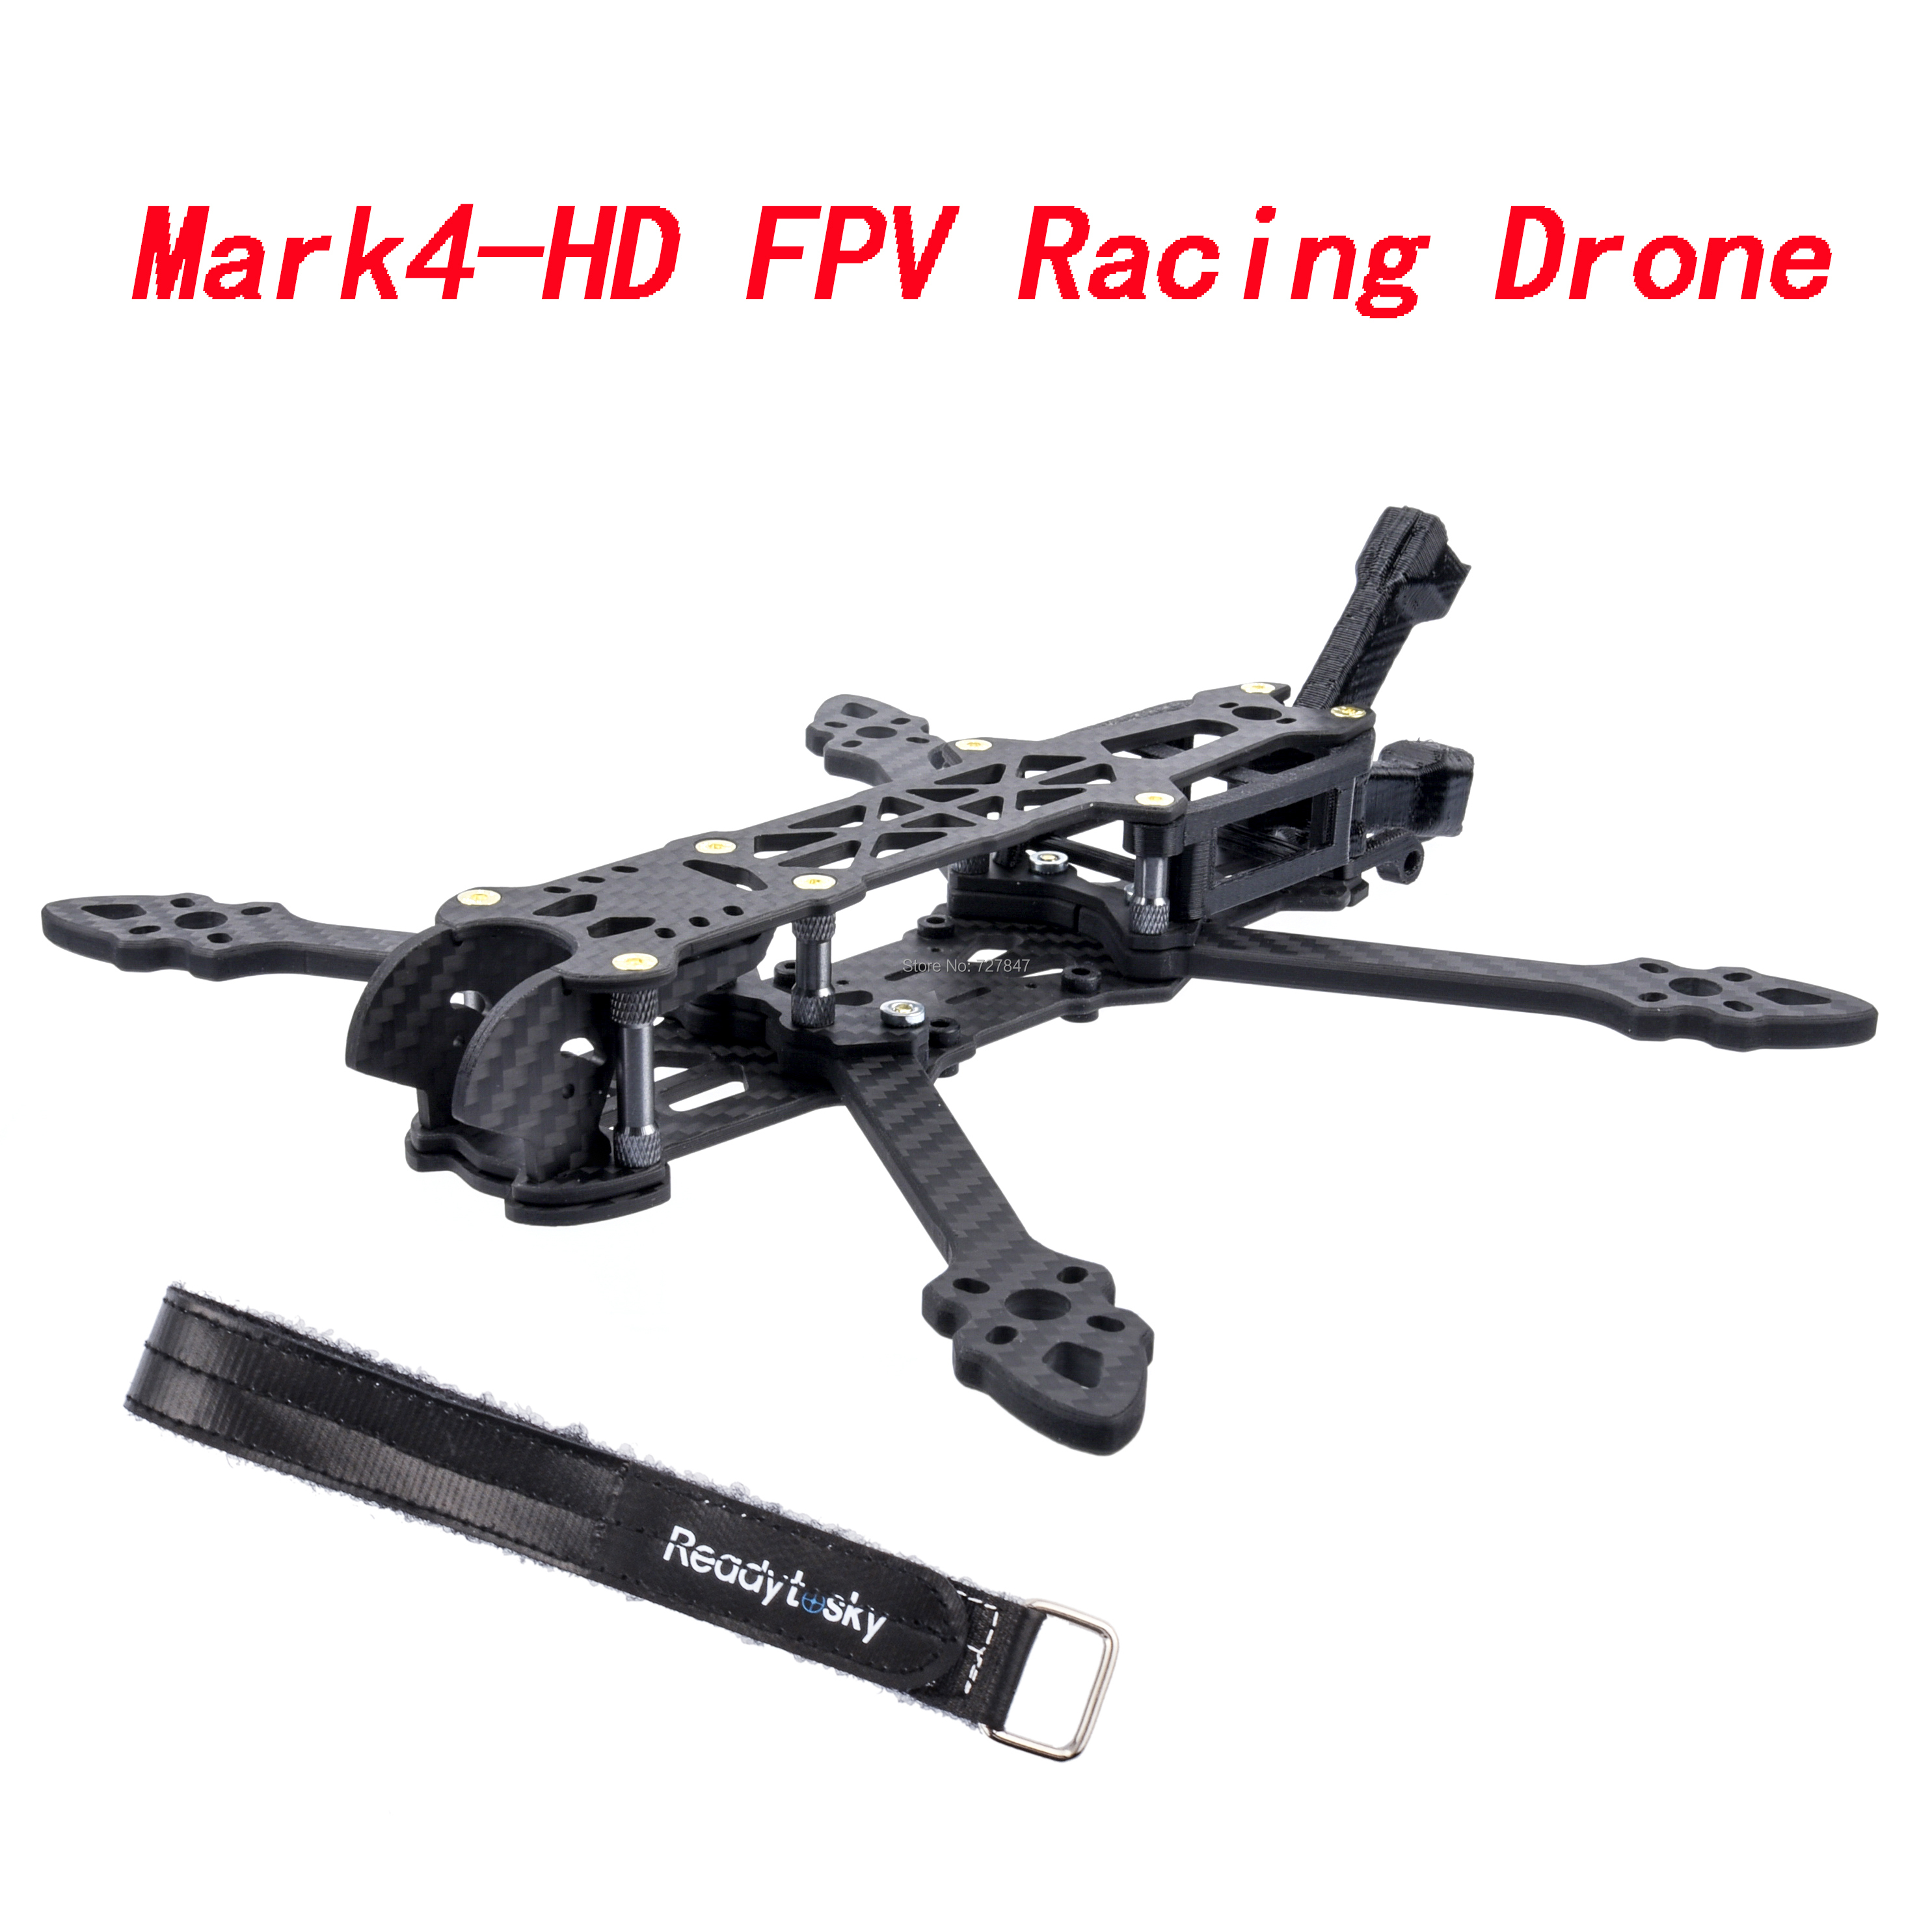 Mark4-HD Mark4 5inch 224mm / 6inch 260mm /7inch 295mm With 5mm Arm FPV Racing Drone Quadcopter Freestyle Frame For Rooster QAV-X